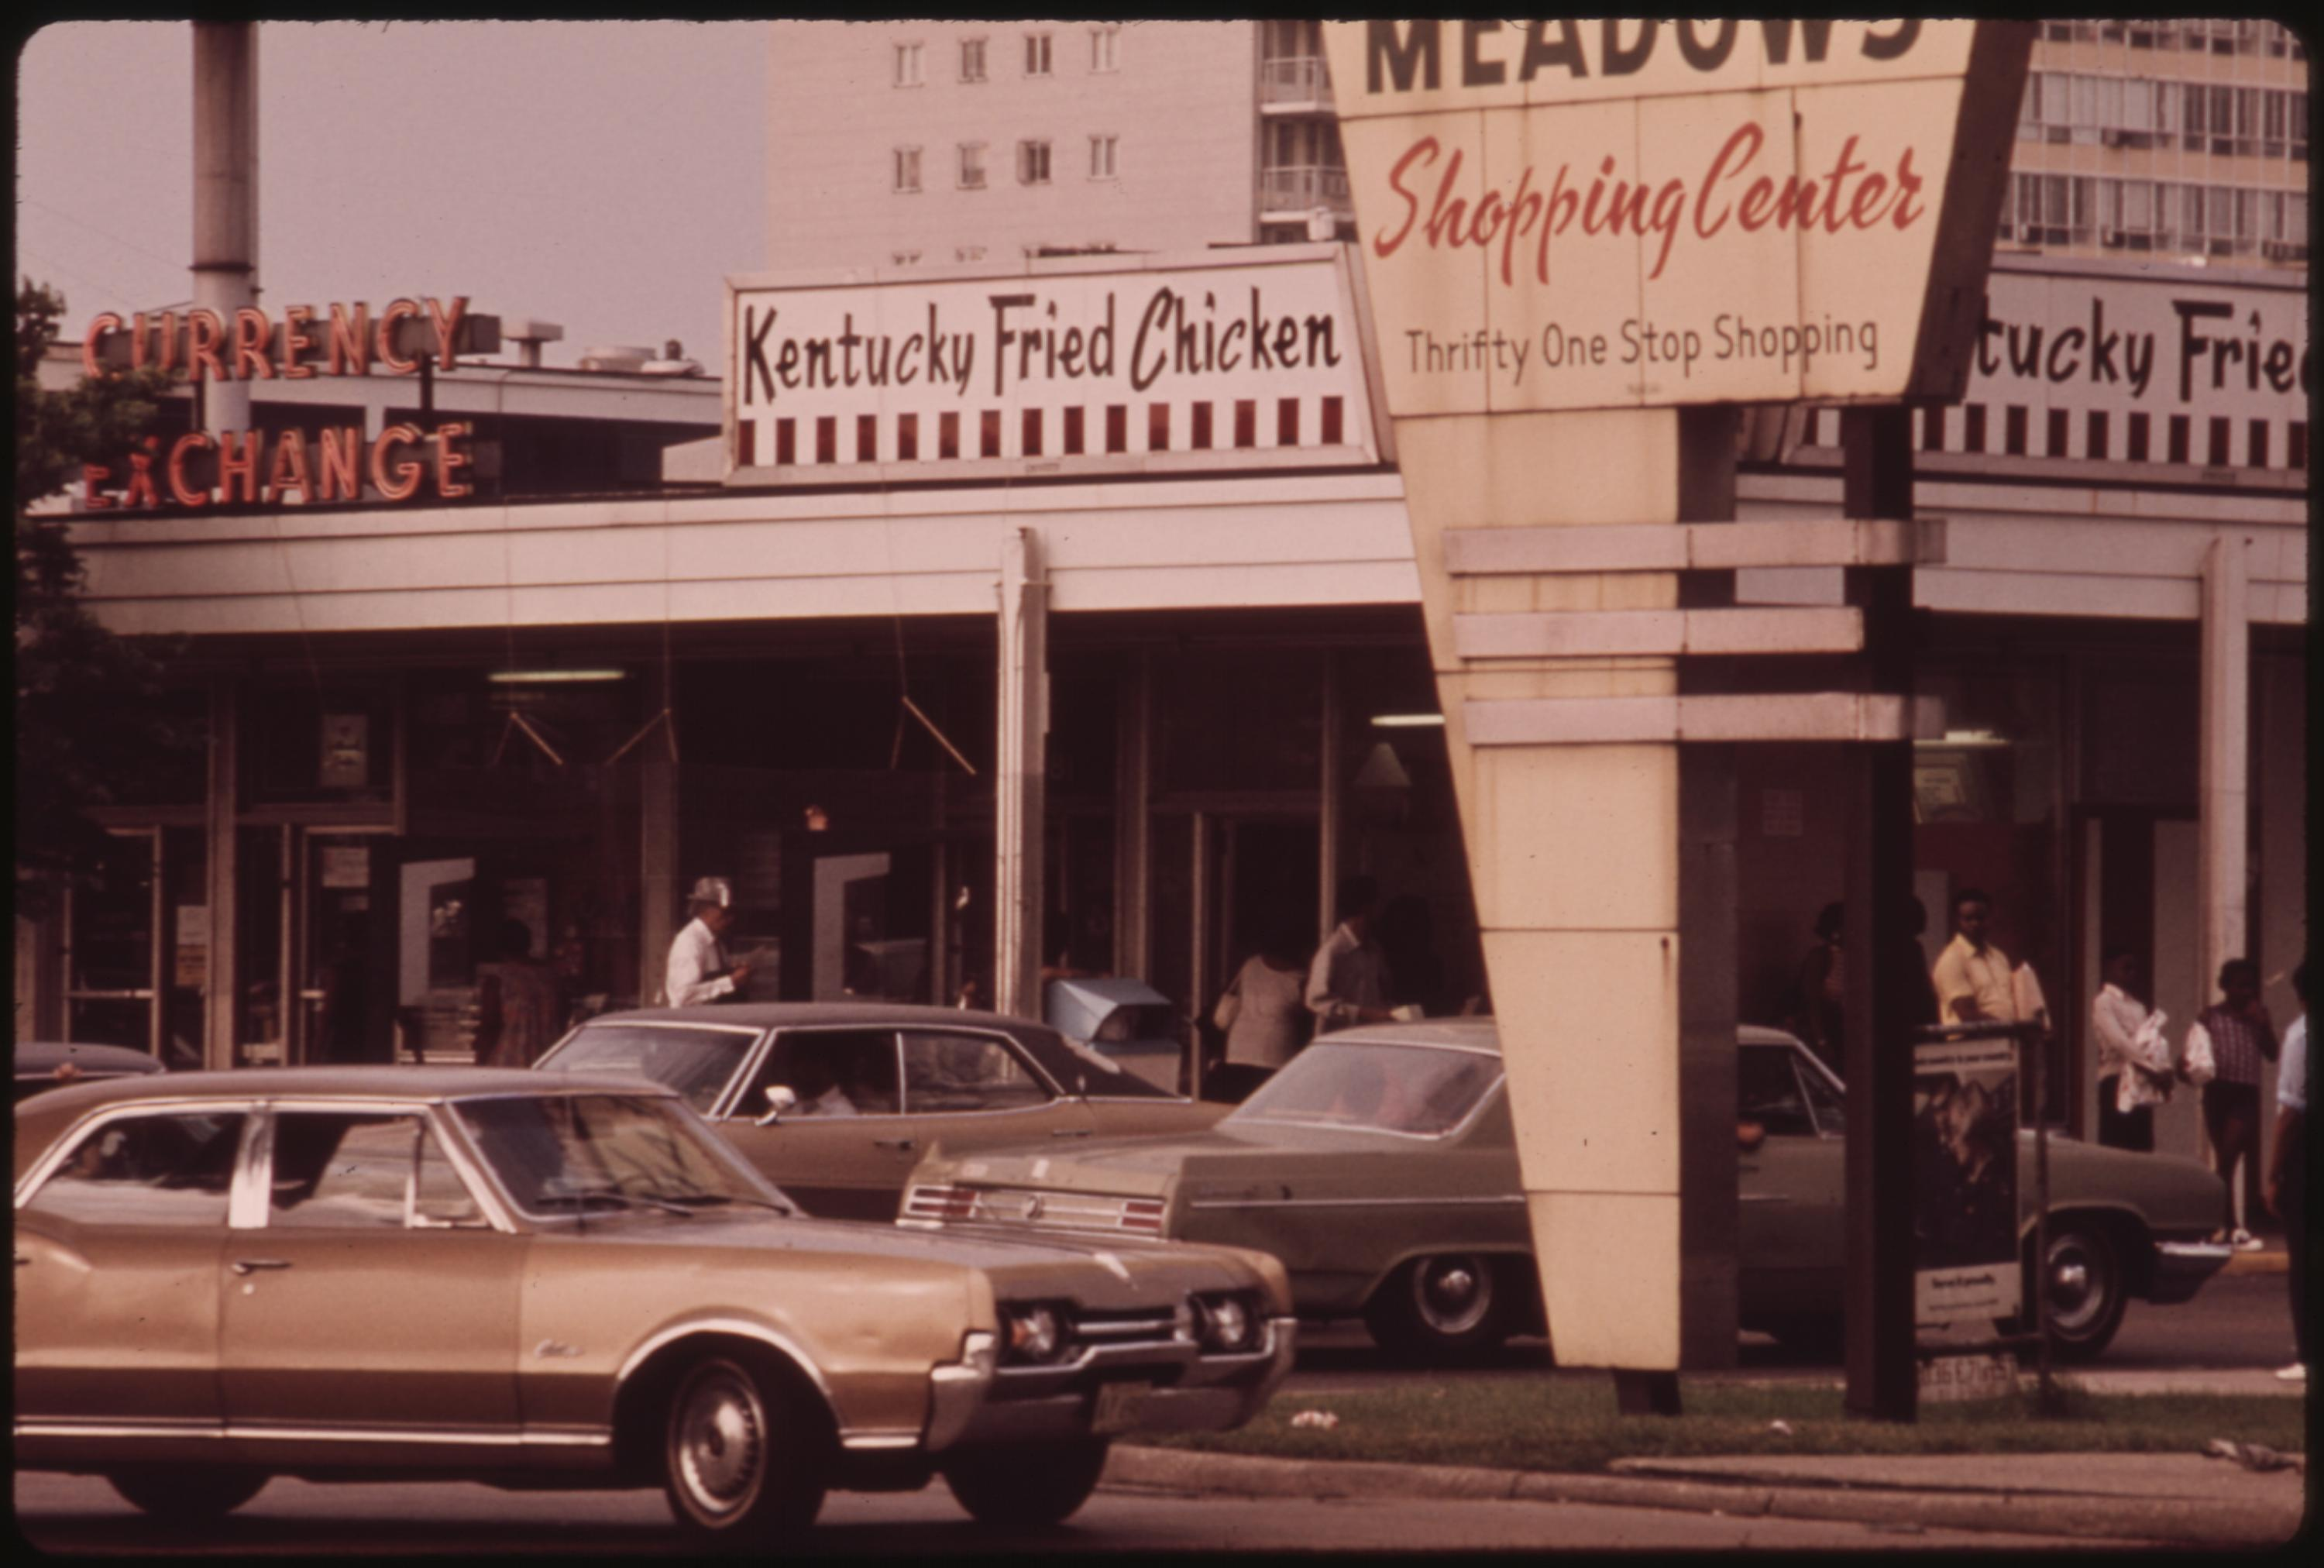 Lake Meadows Shopping Center On Chicago's South Side Which Is Frequented By Blacks, 06:1973